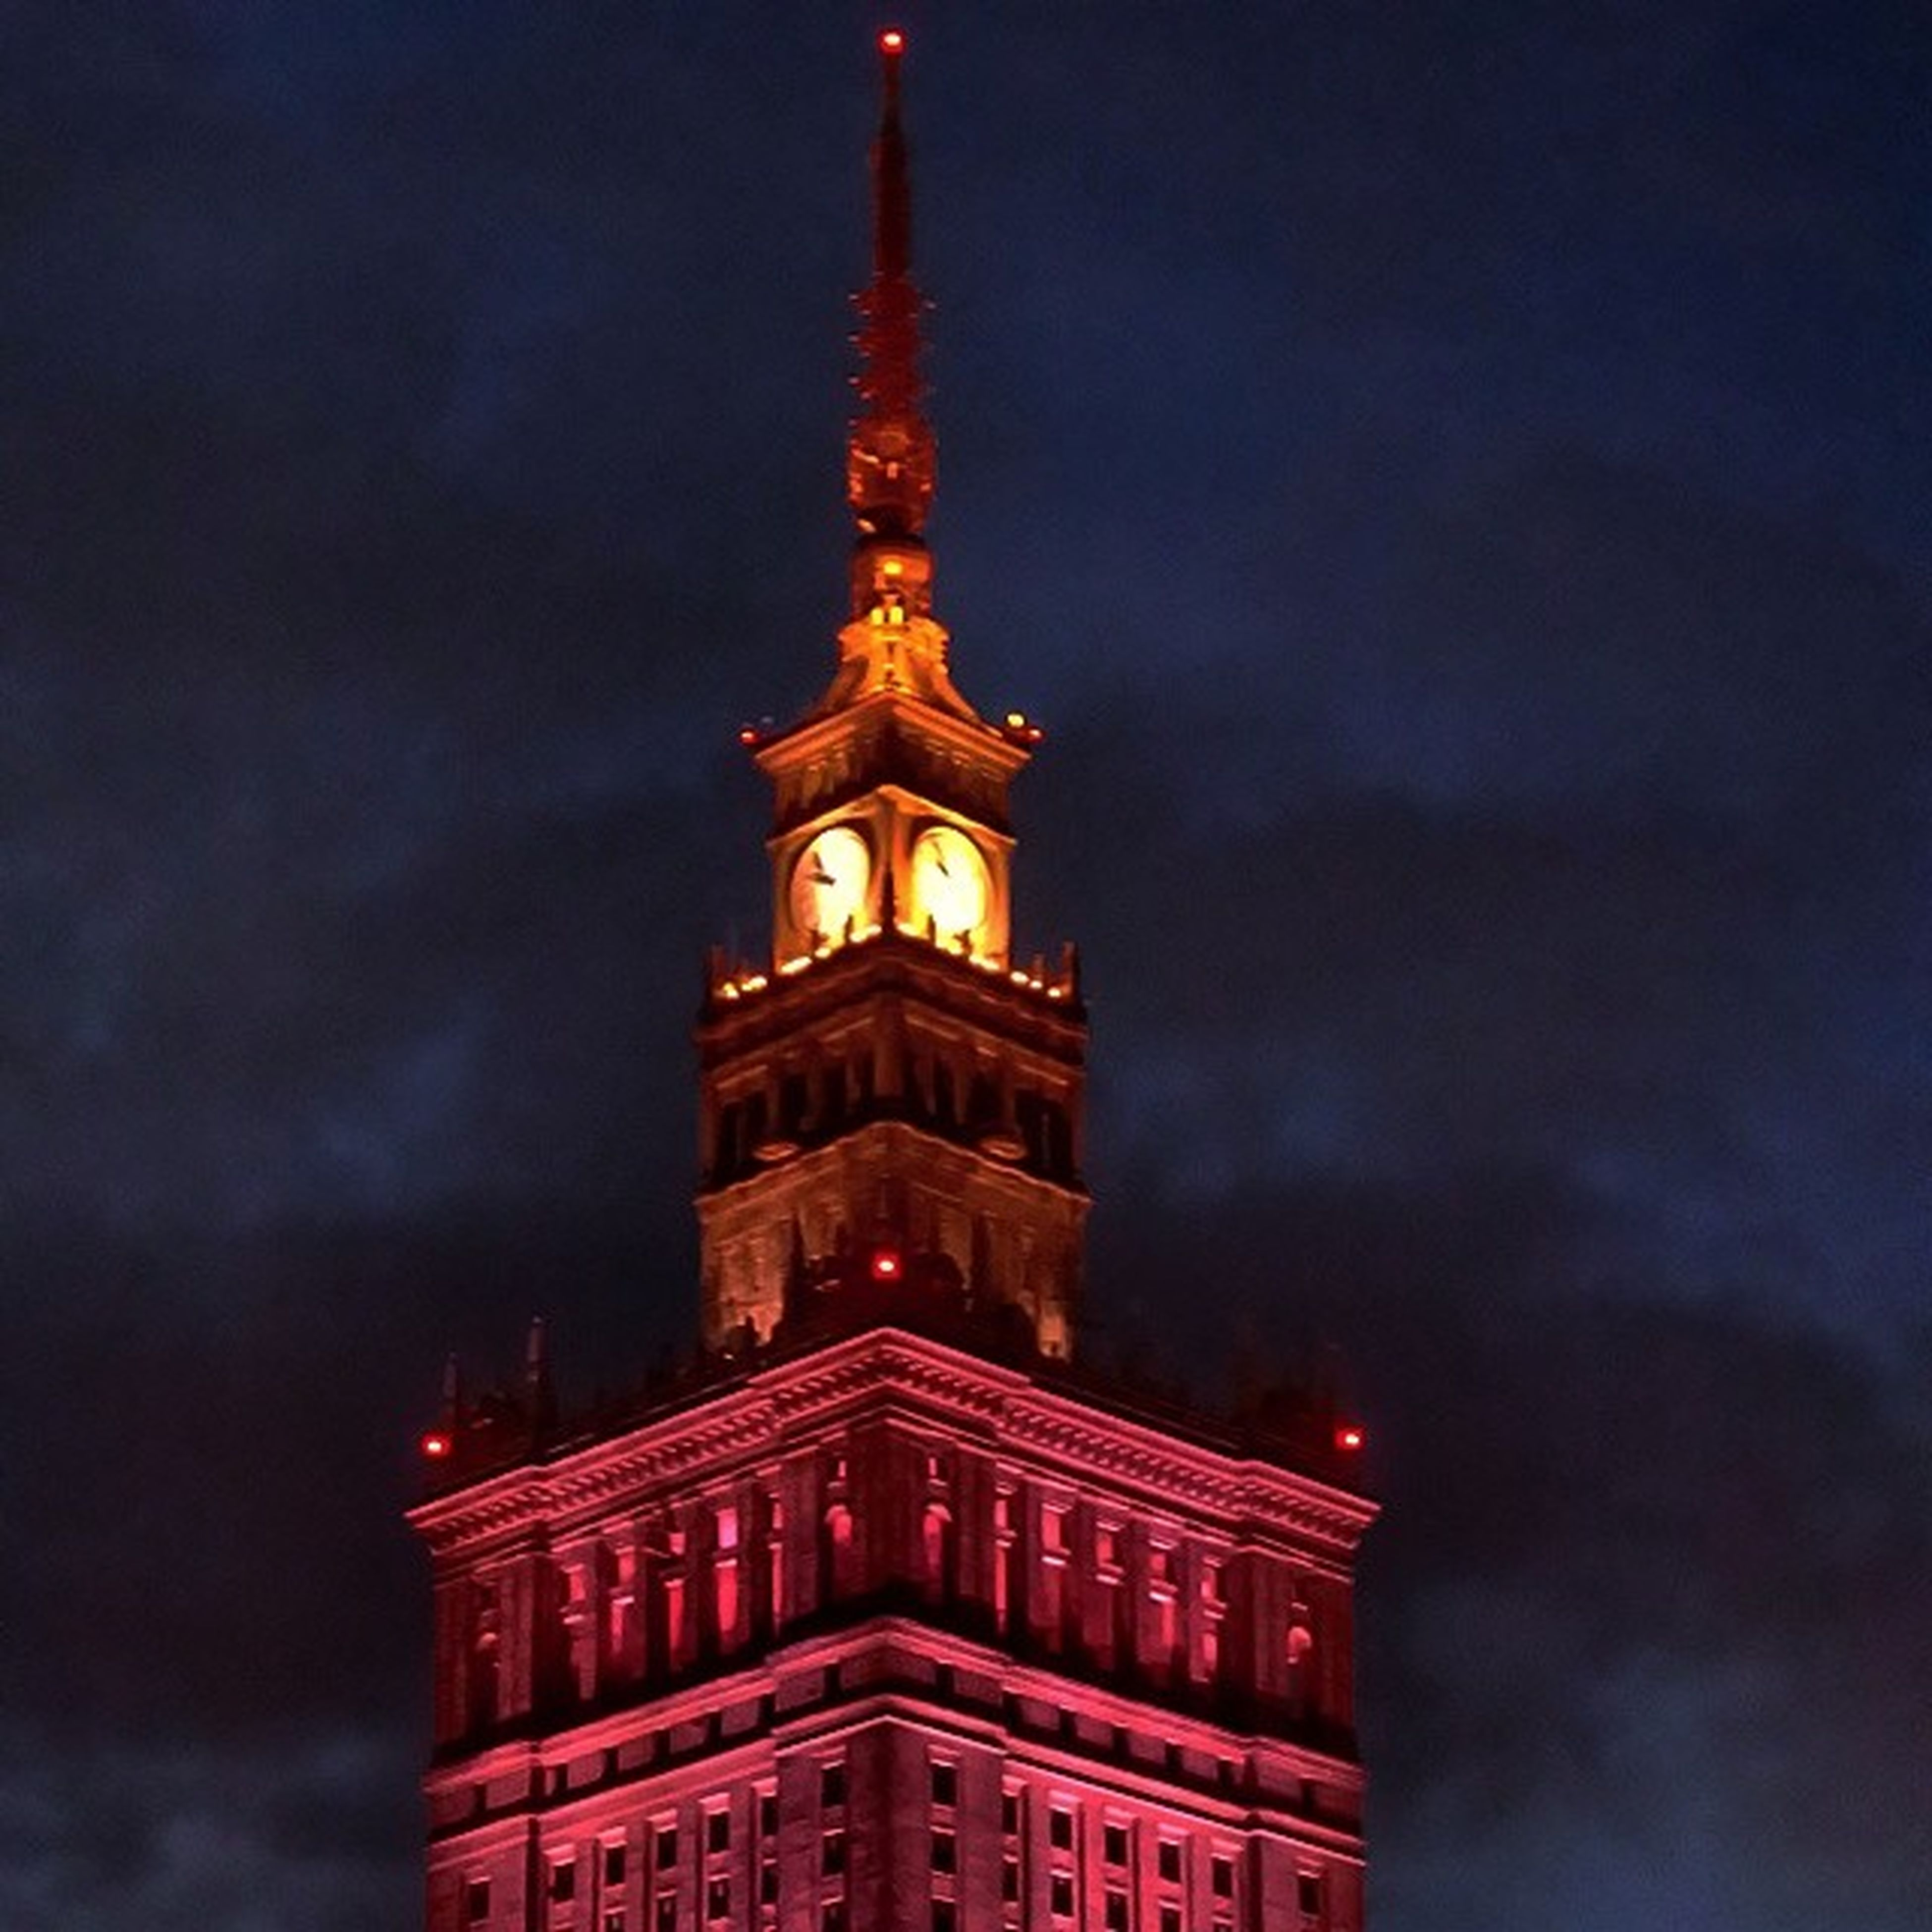 low angle view, architecture, built structure, building exterior, sky, tower, cloud - sky, travel destinations, famous place, tourism, clock tower, tall - high, international landmark, cloudy, travel, capital cities, illuminated, night, dusk, history